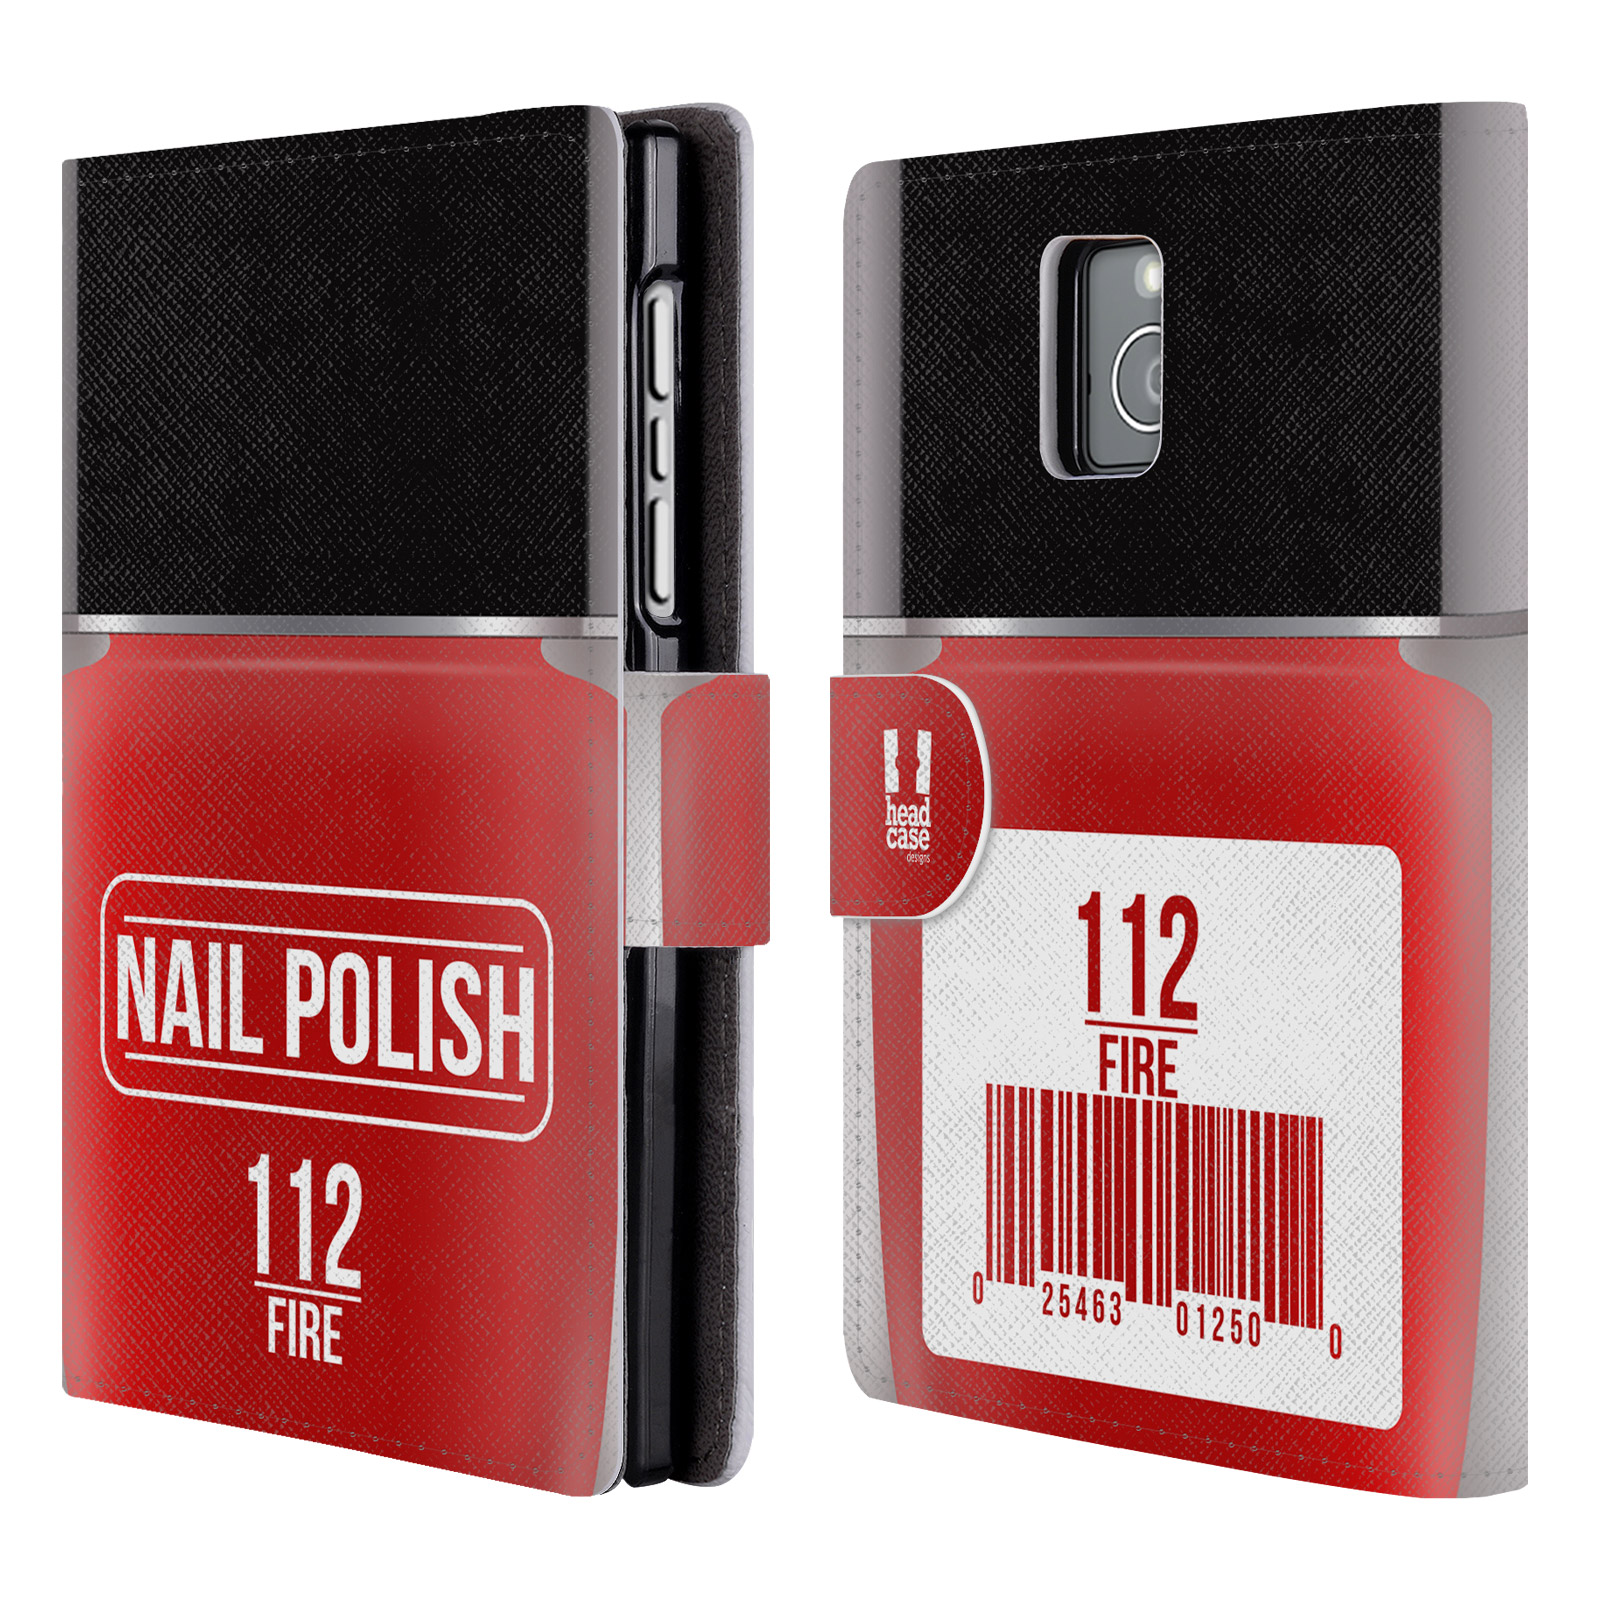 Book Cover Black Berry : Head case designs nail polish leather book wallet for